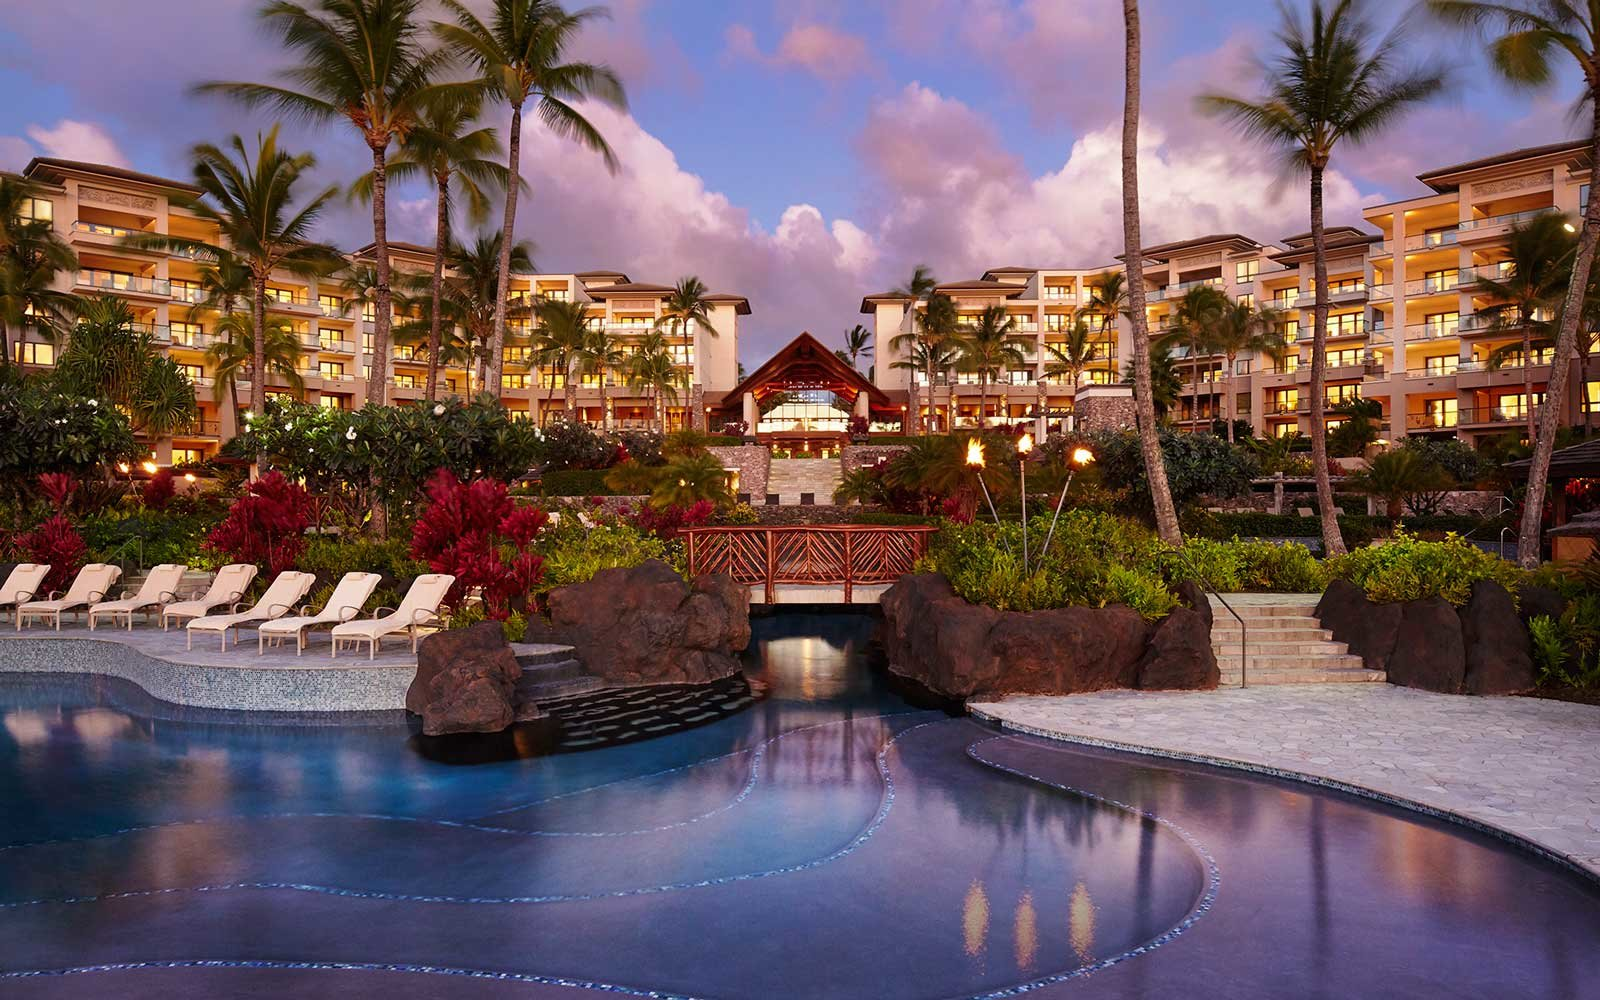 Night view of the pool at Montage Kapalua Bay